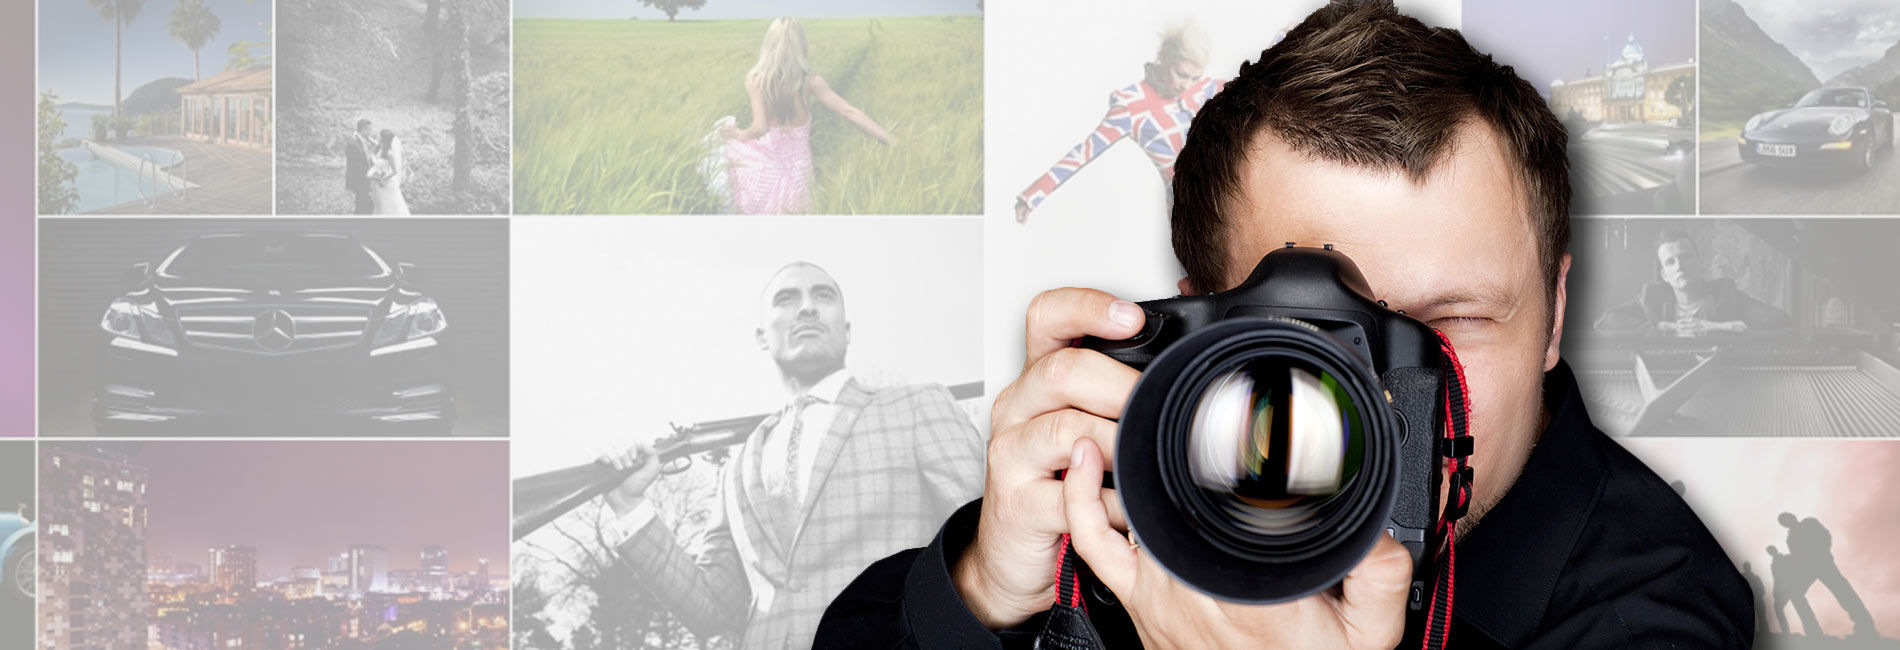 web-design-photography